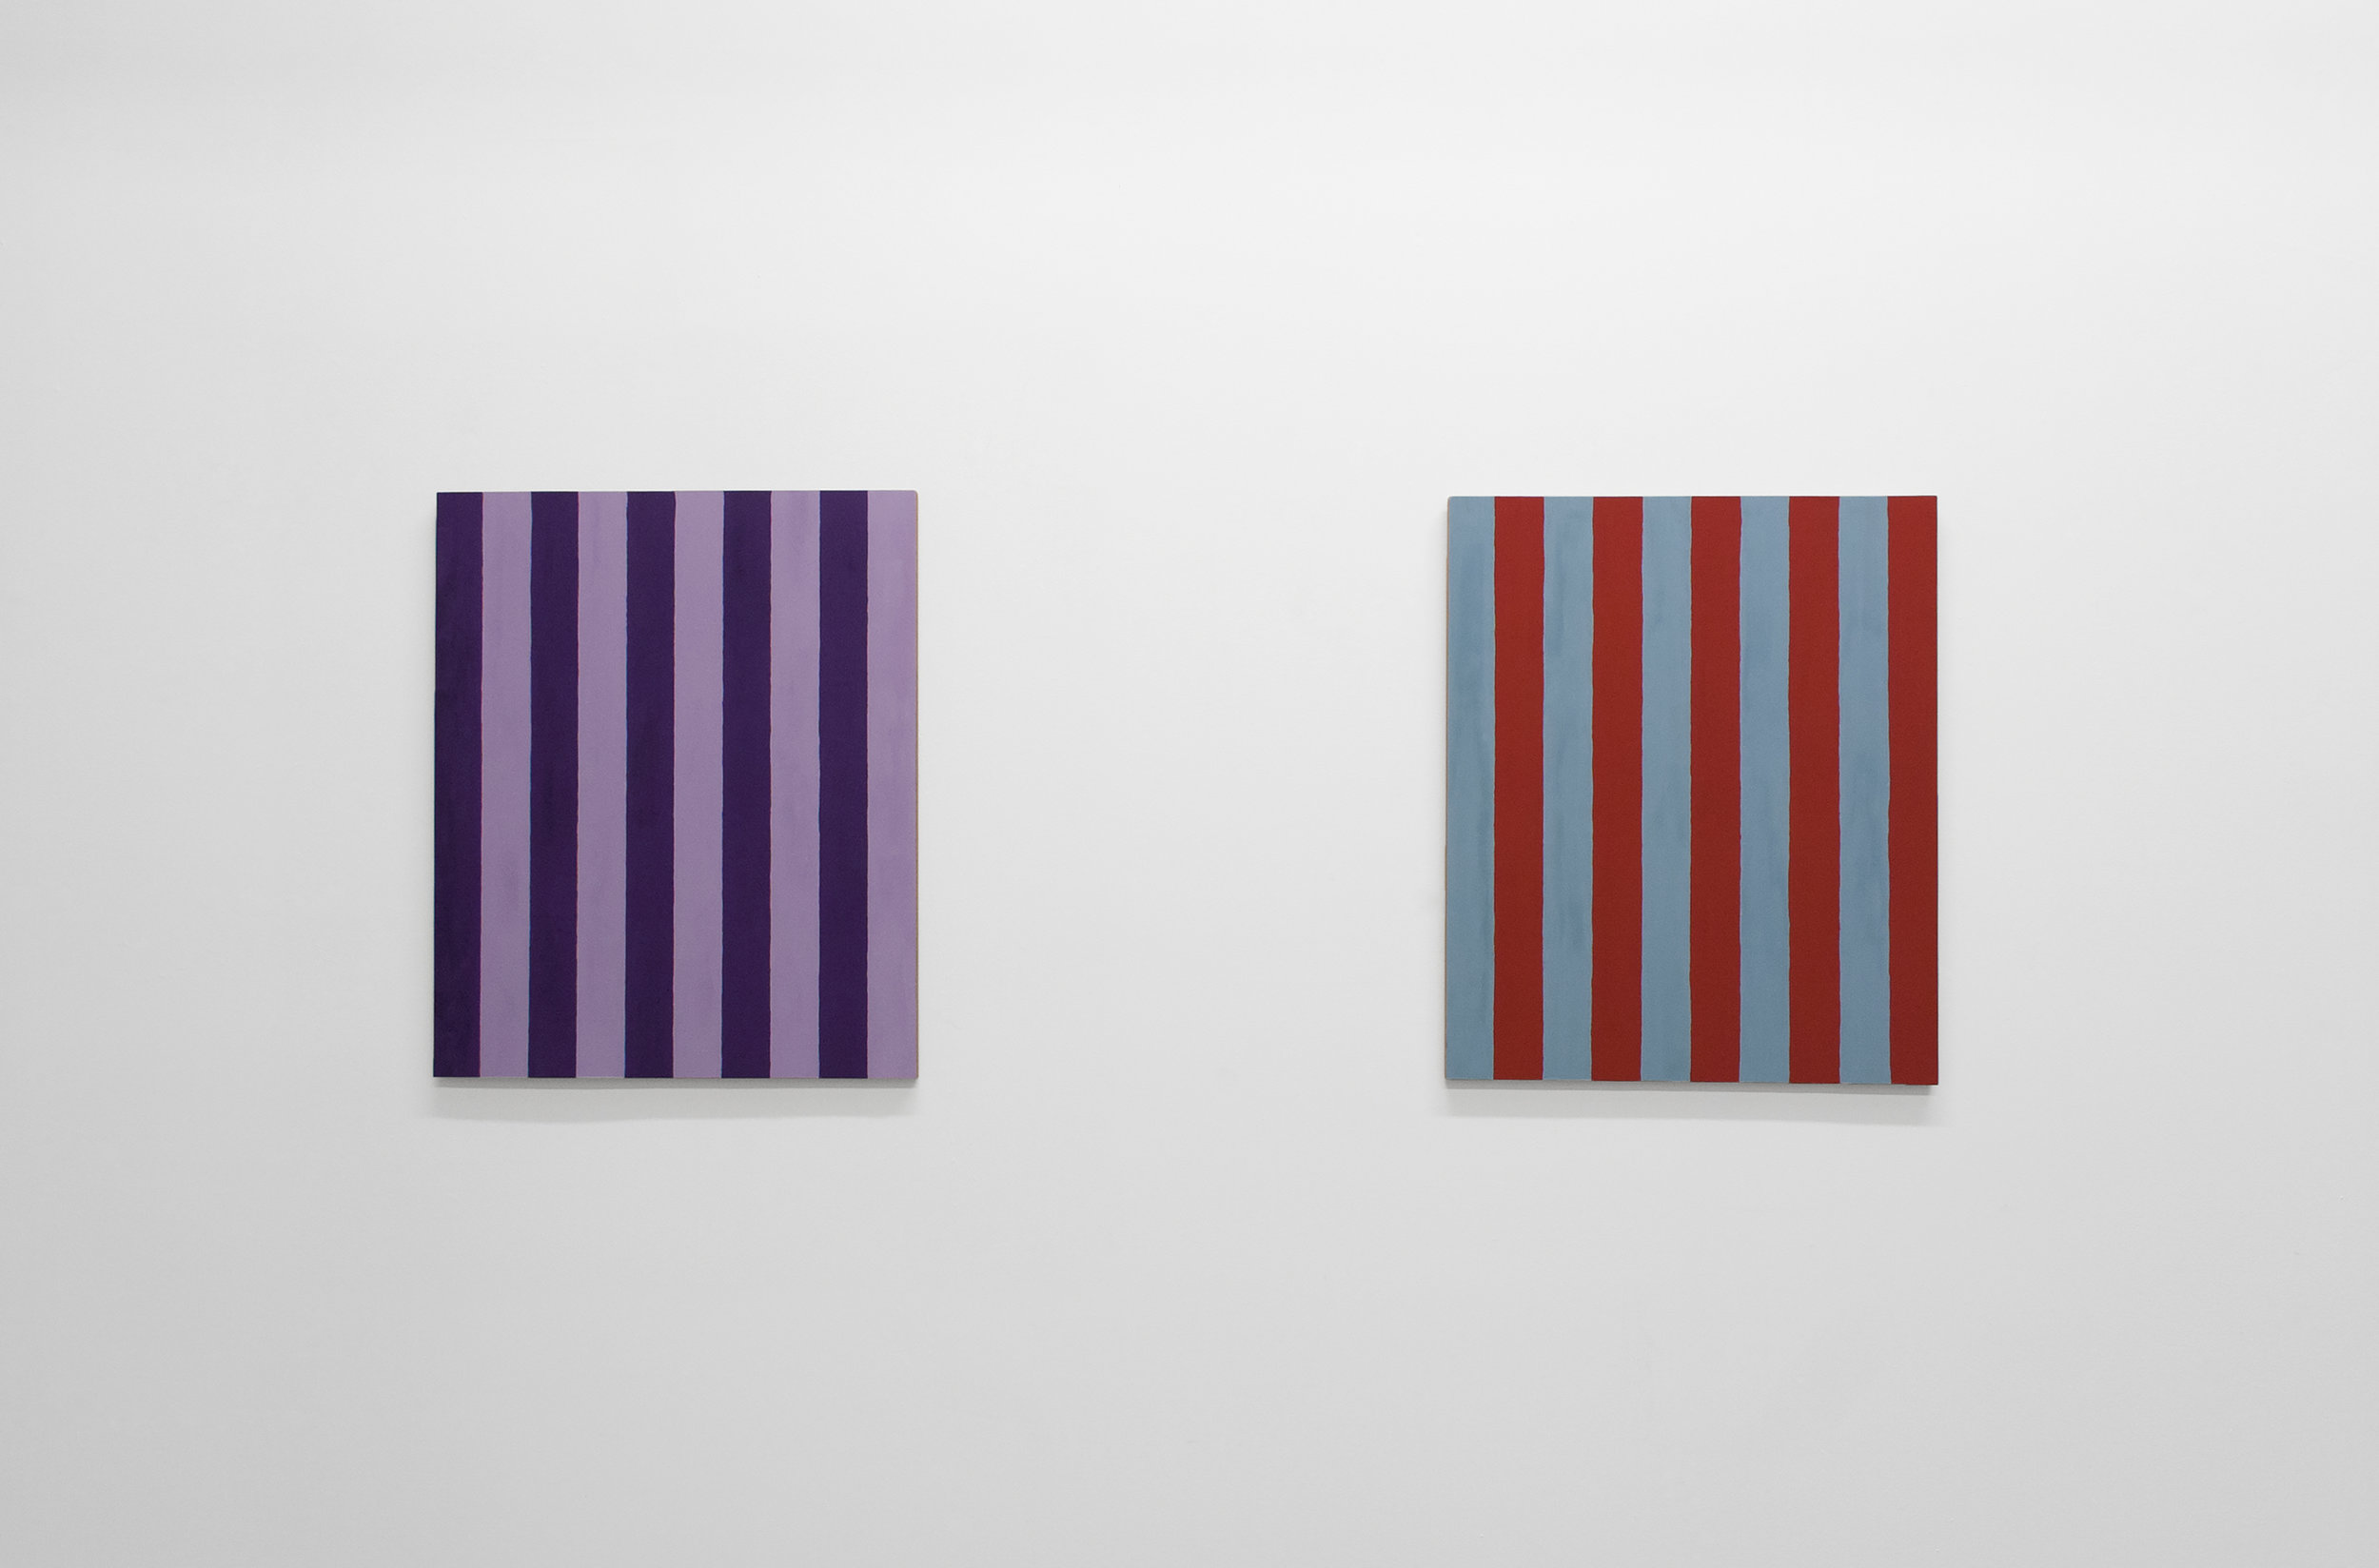 """LEFT TO RIGHT:   Untitled (Two Inch Stripes #7), 1986 , 2016, casein on mahogany, 24"""" x 20""""   Untitled (Two Inch Stripes) #12, 1986 , 2016, casein on mahogany, 24"""" x 20"""""""